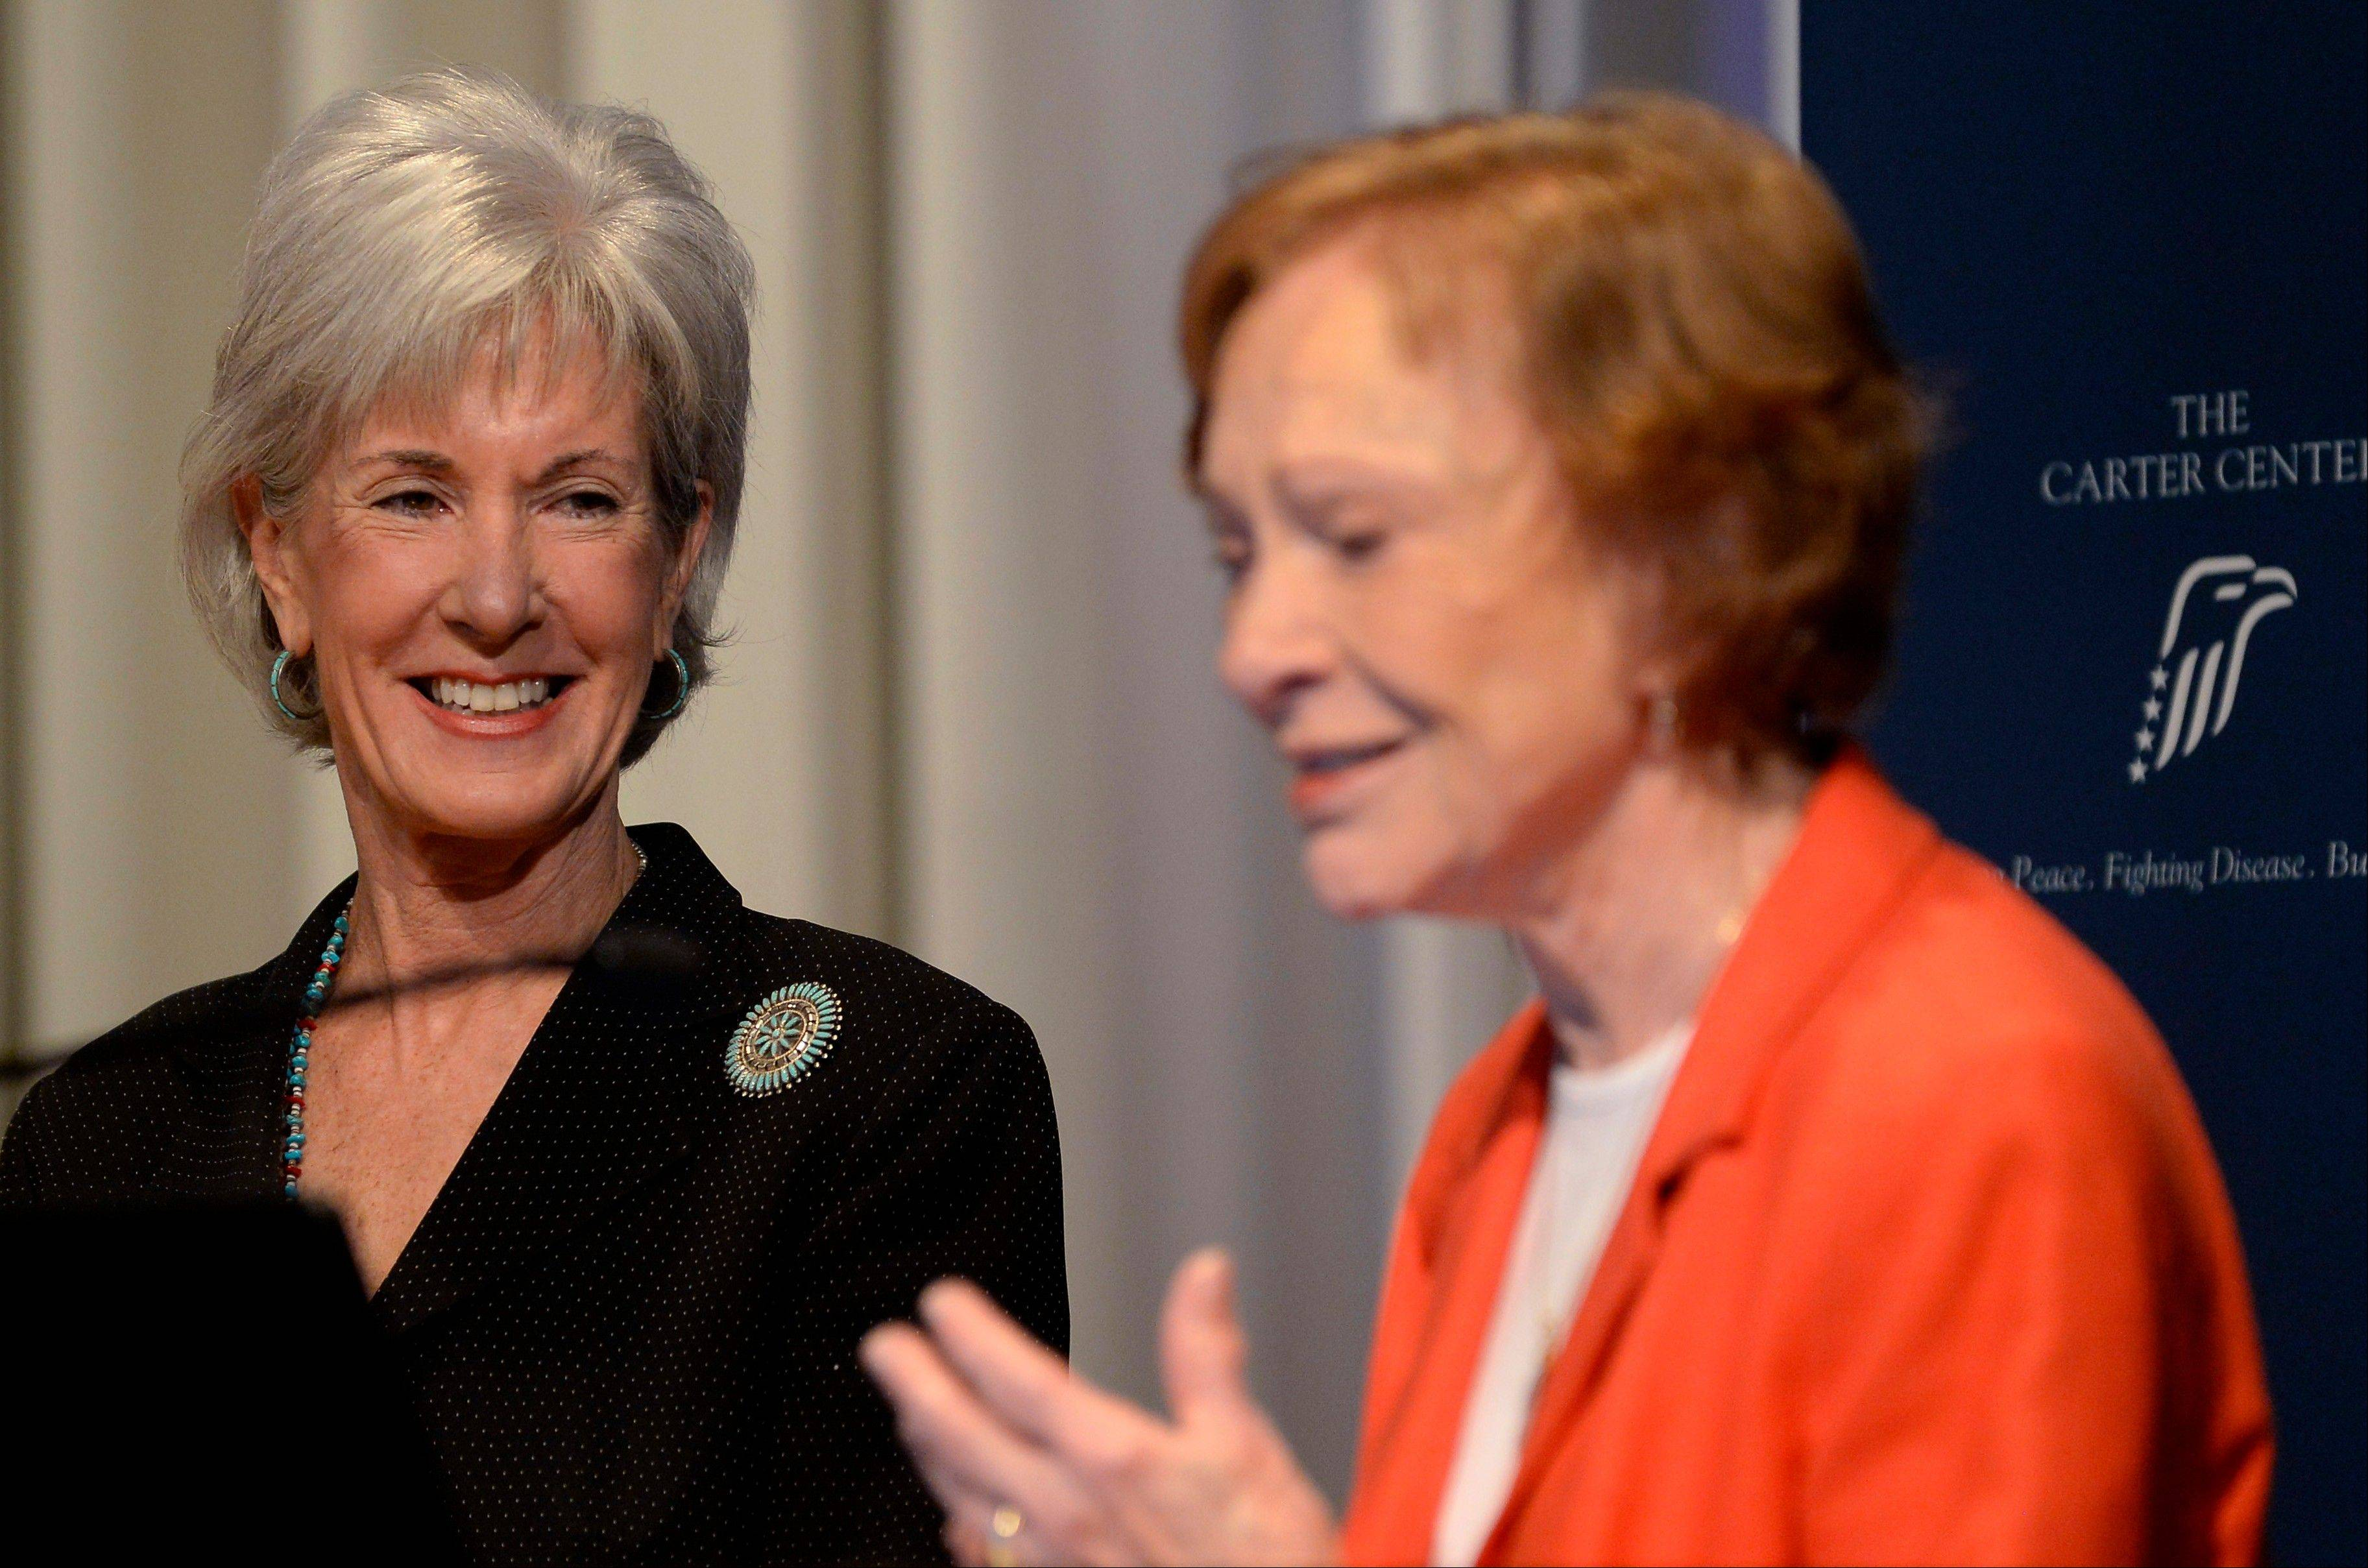 Department of Health and Human Services Secretary Kathleen Sebelius smiles Friday as she is thanked by Former First Lady Rosalynn Carter after announcing easier access to mental health care during Carter's 29th annual mental health policy symposium at the Carter Center in Atlanta.